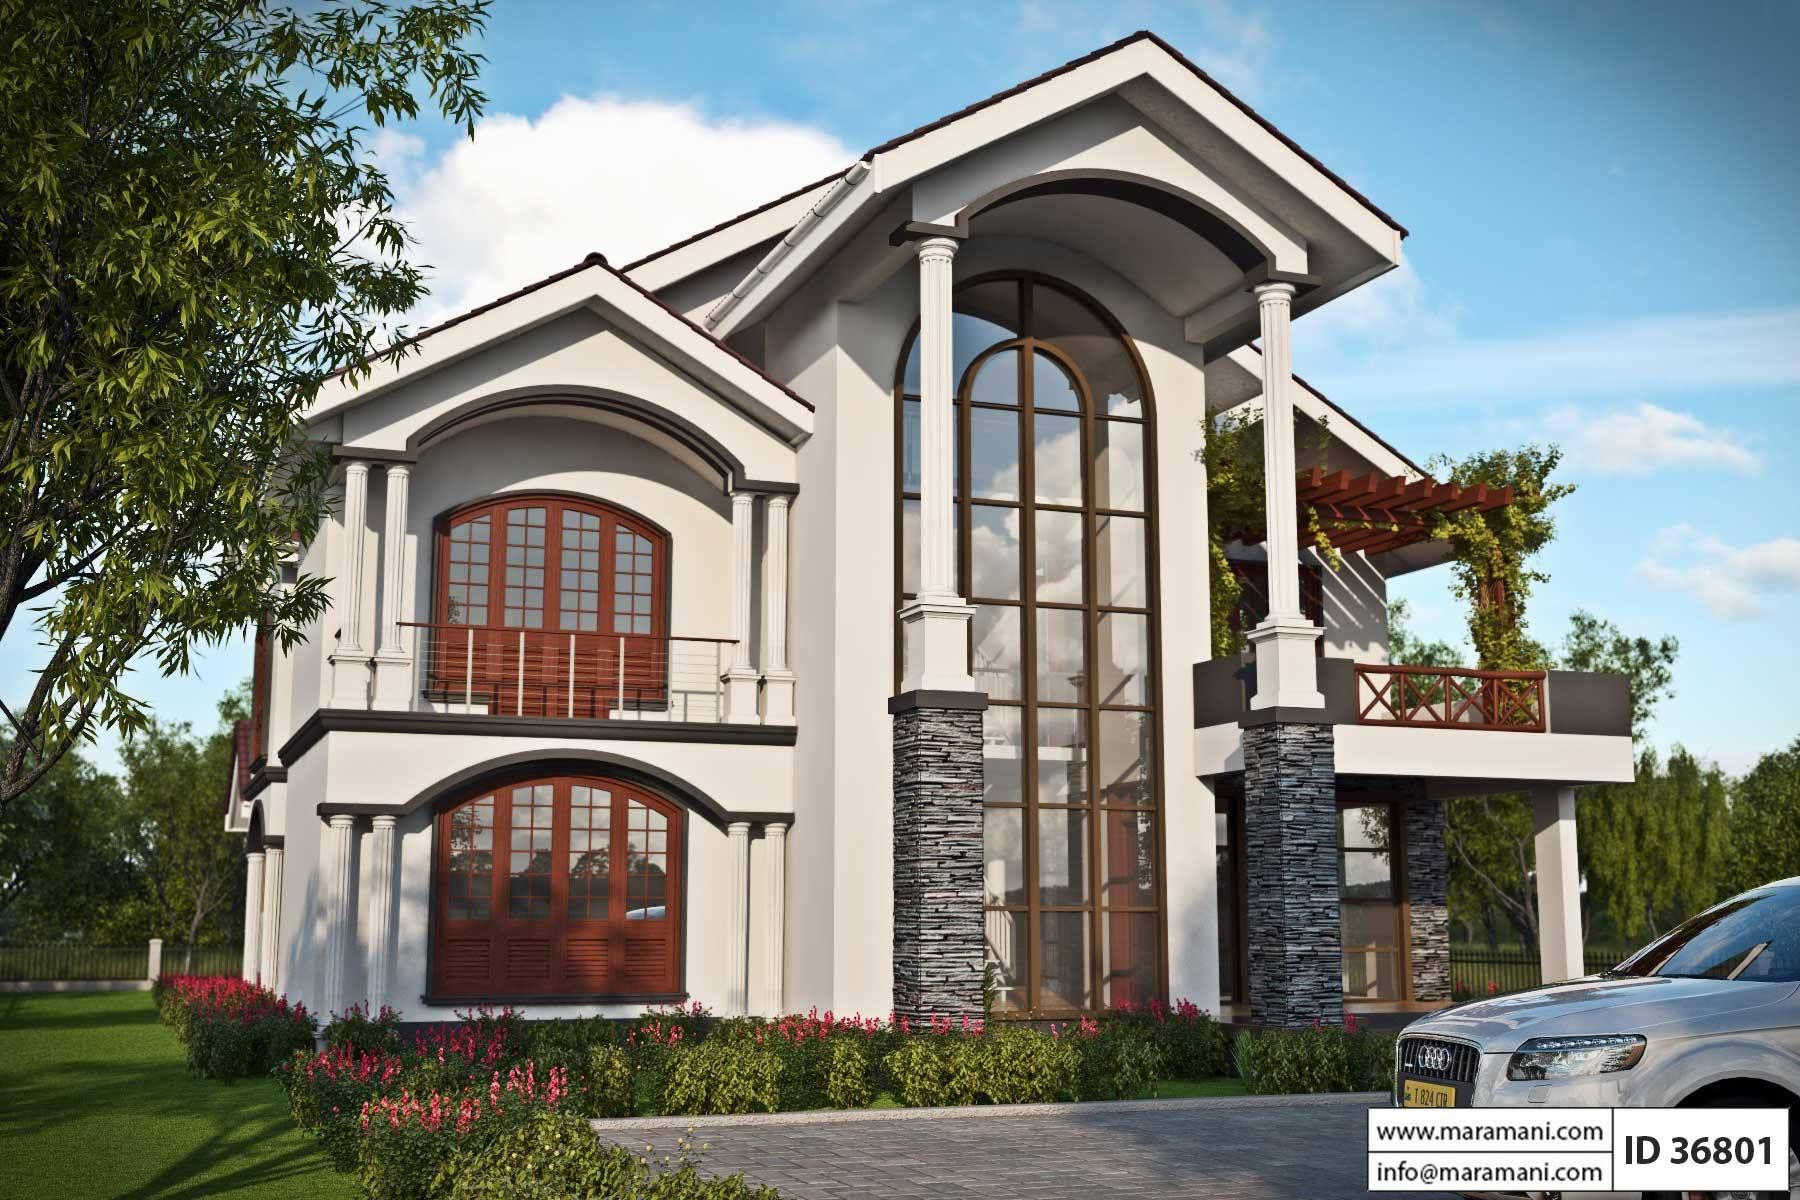 6 Bedroom House Design Id 36801 Architectural House Plans House Plans House Design